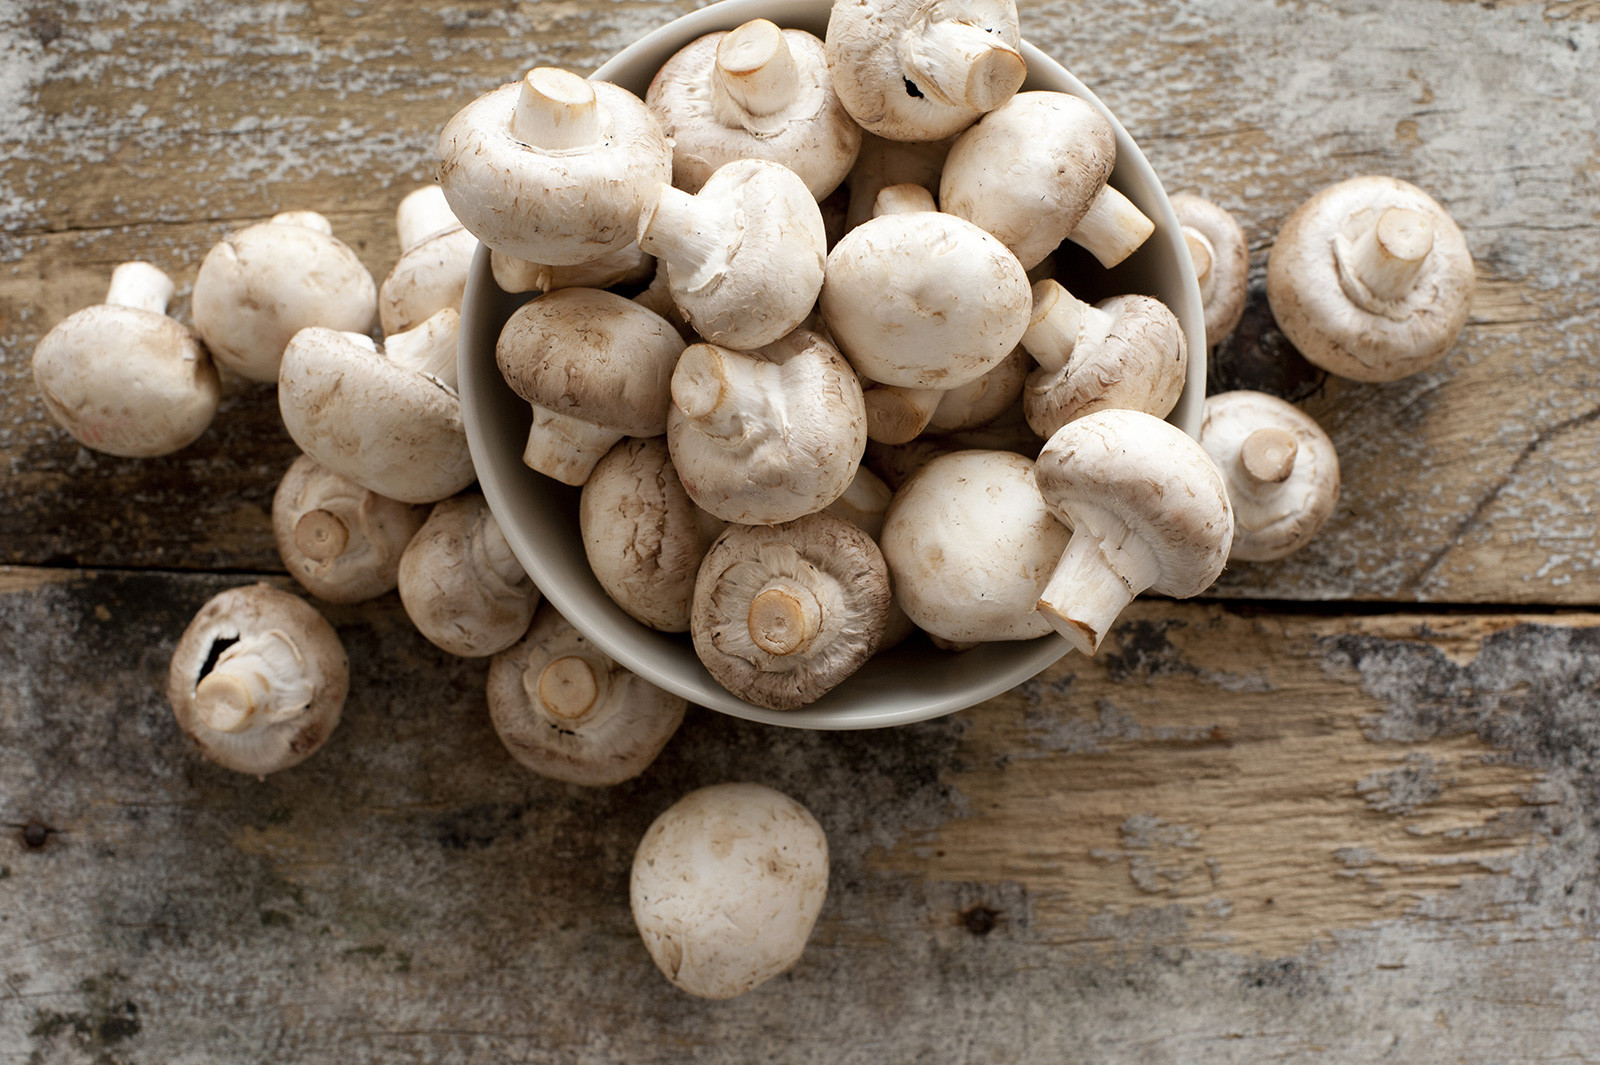 Fresh, whole White Cap mushrooms in a bowl, placed on a rustic wooden table.